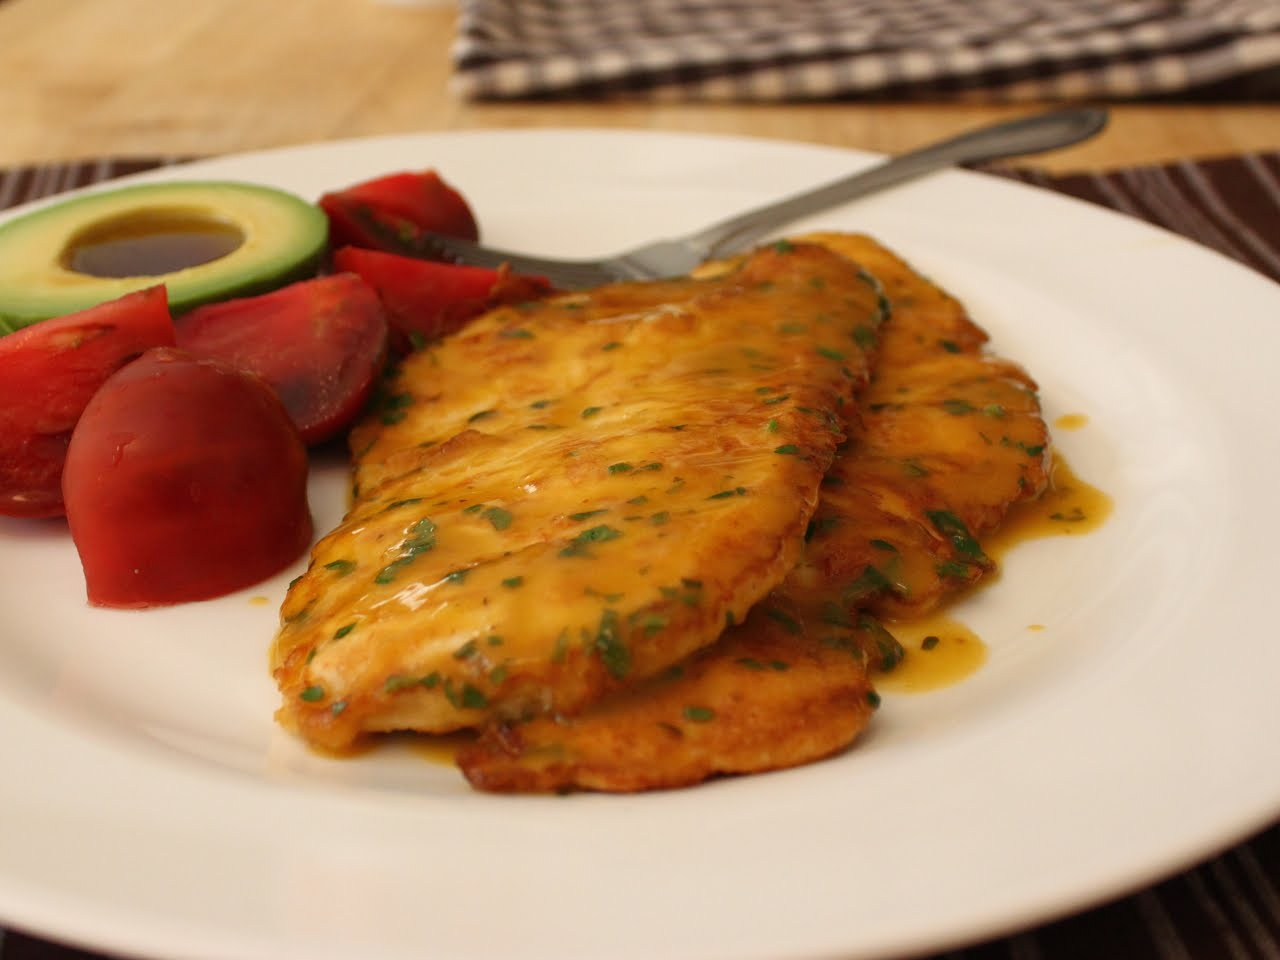 Food wishes video recipes coming soon chicken french for French cuisine recipes